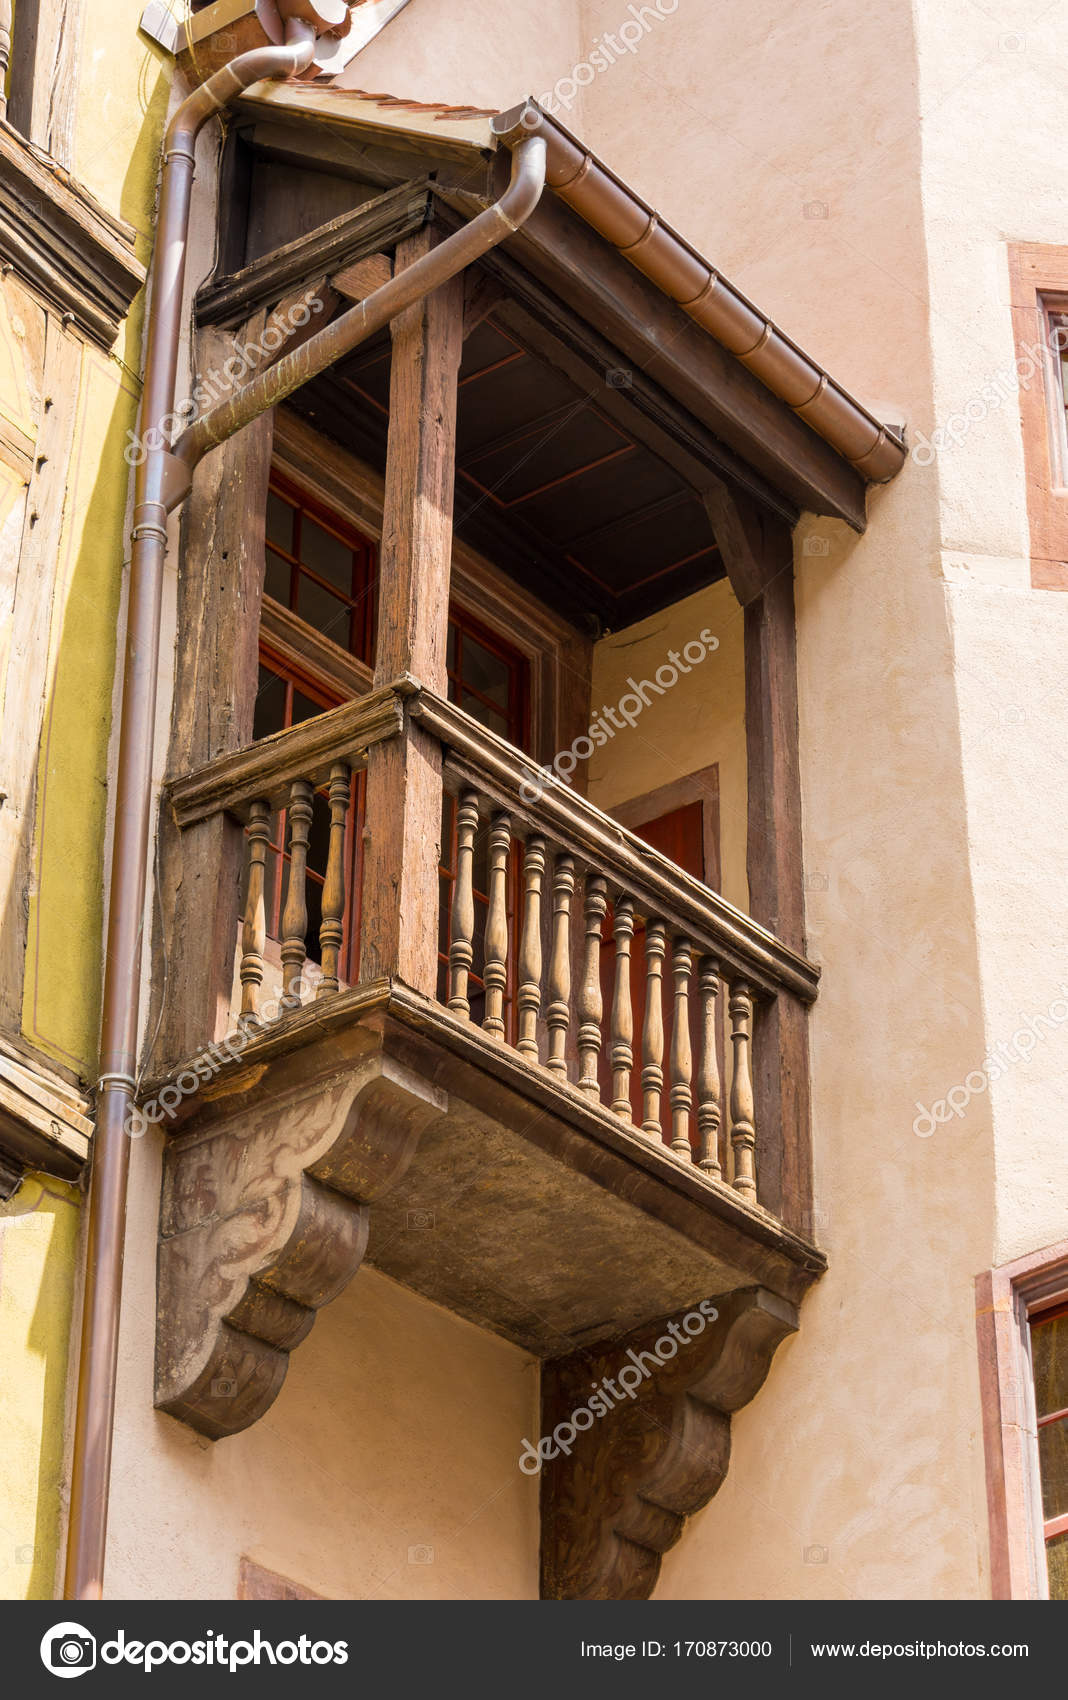 Small Wooden Balcony On An Old Half Timbered House In The French Town Of Colmar In Alsace Stock Photo C Tkphotography 170873000